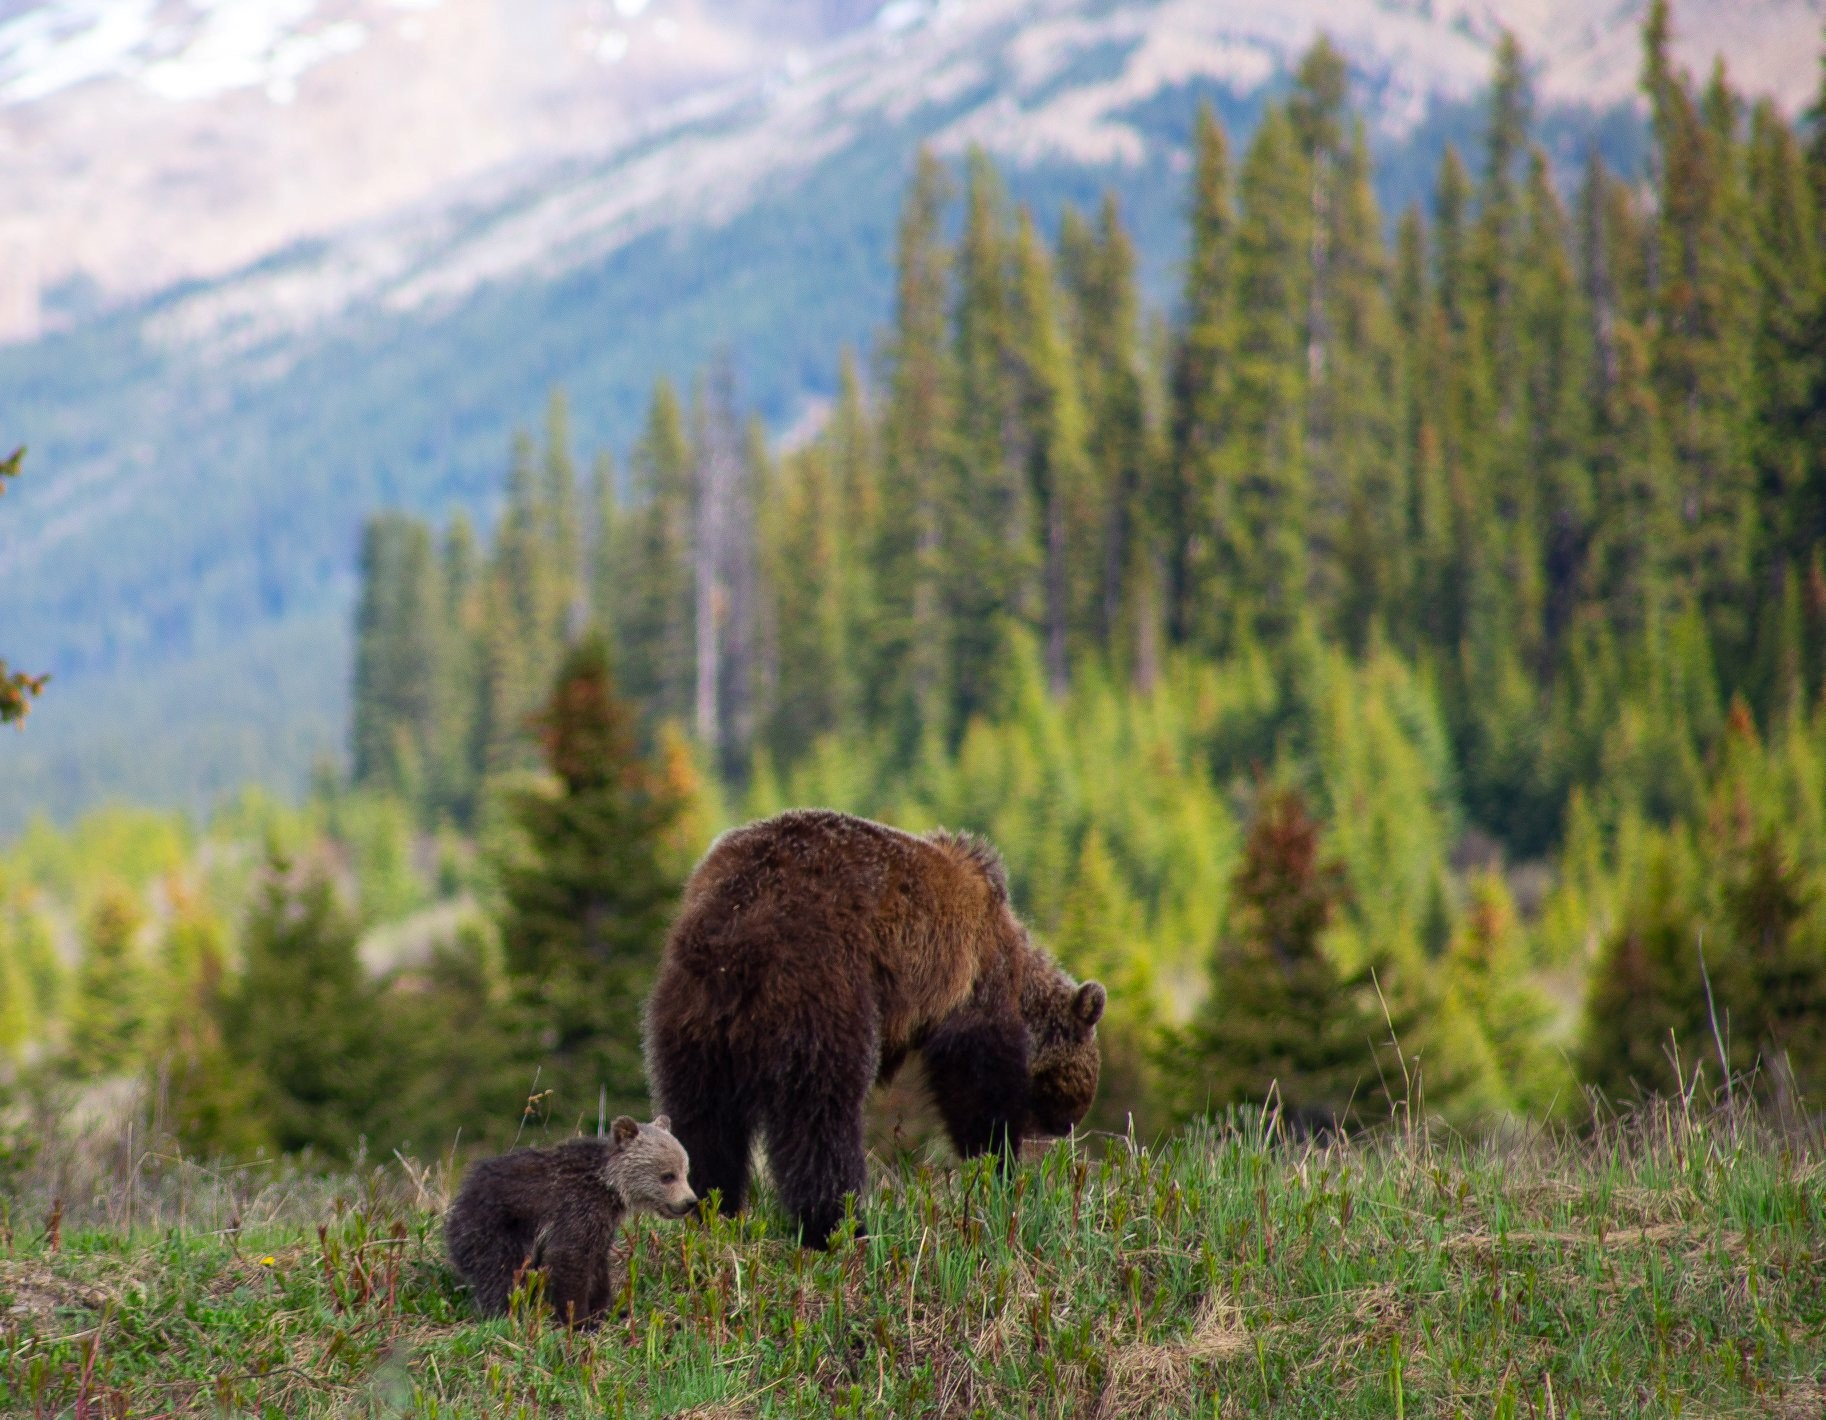 Figure 4 Mama and baby Grizzly bears in Jasper Park. Photo by Michelle Bender, used with permission of author.